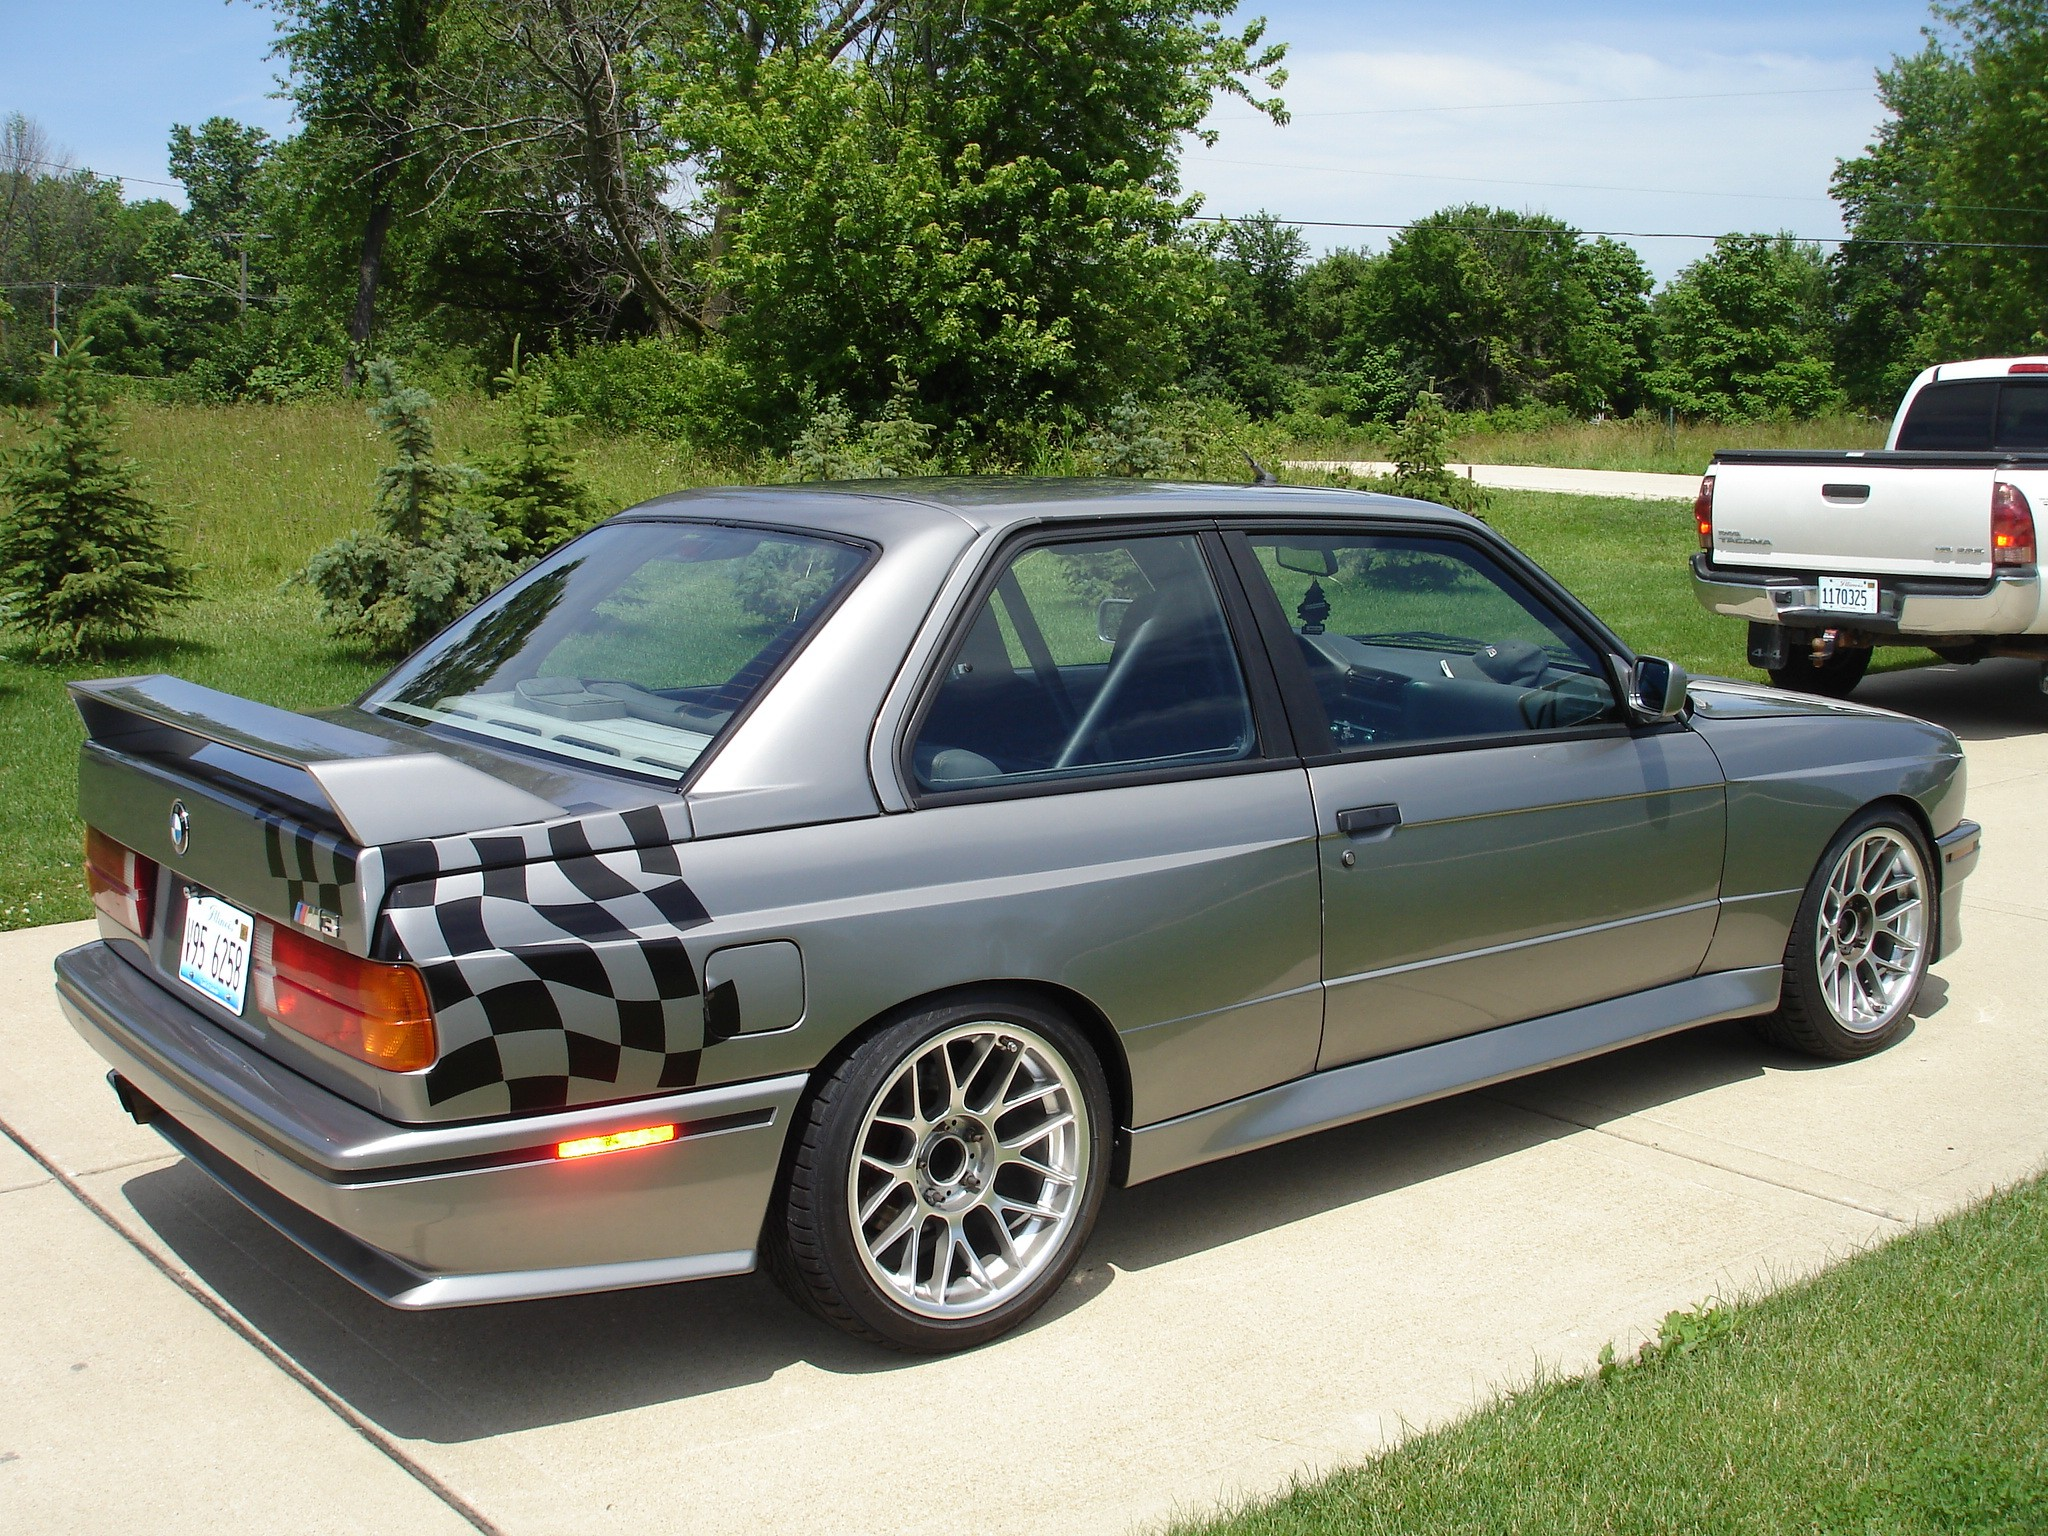 1988 BMW E30 M3 with inline 6cylinder S52 Engine Up for Grabs in